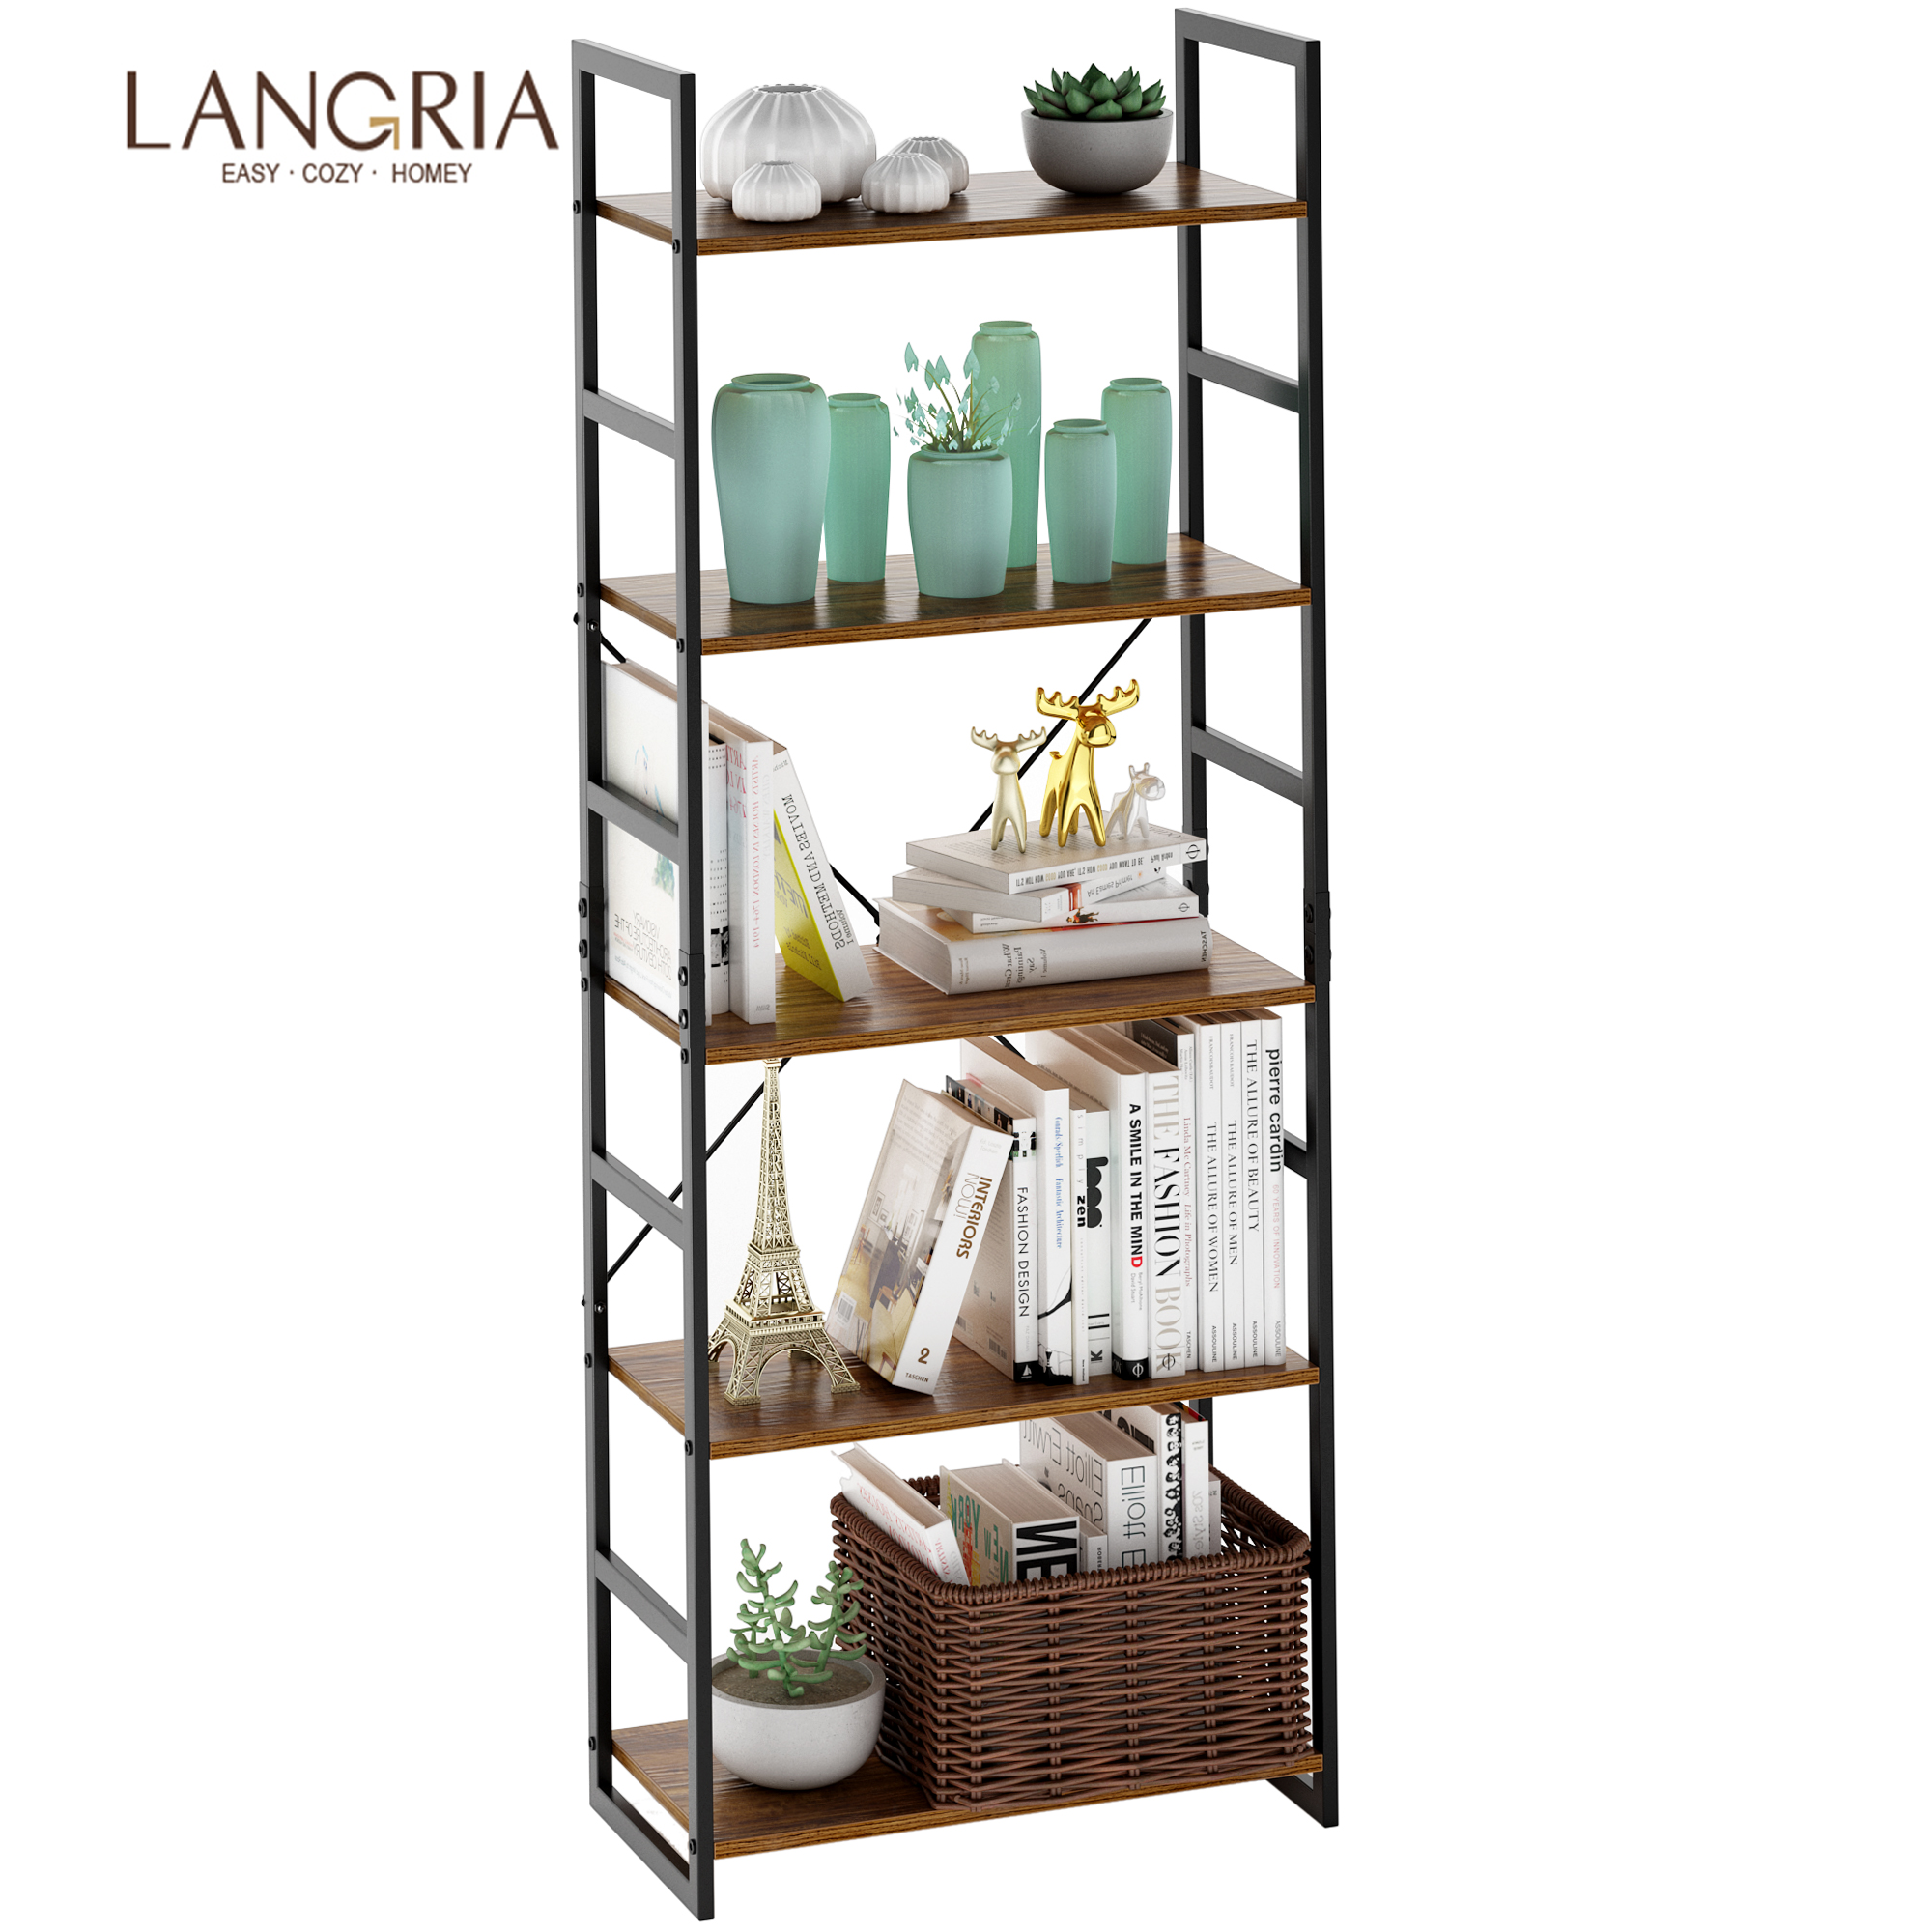 LANGRIA Metal Bookshelf Organizer Sturdy 5-layer Multifunctional Rack Shelf Shelving For Books Plants Boxes Antique Wood Design